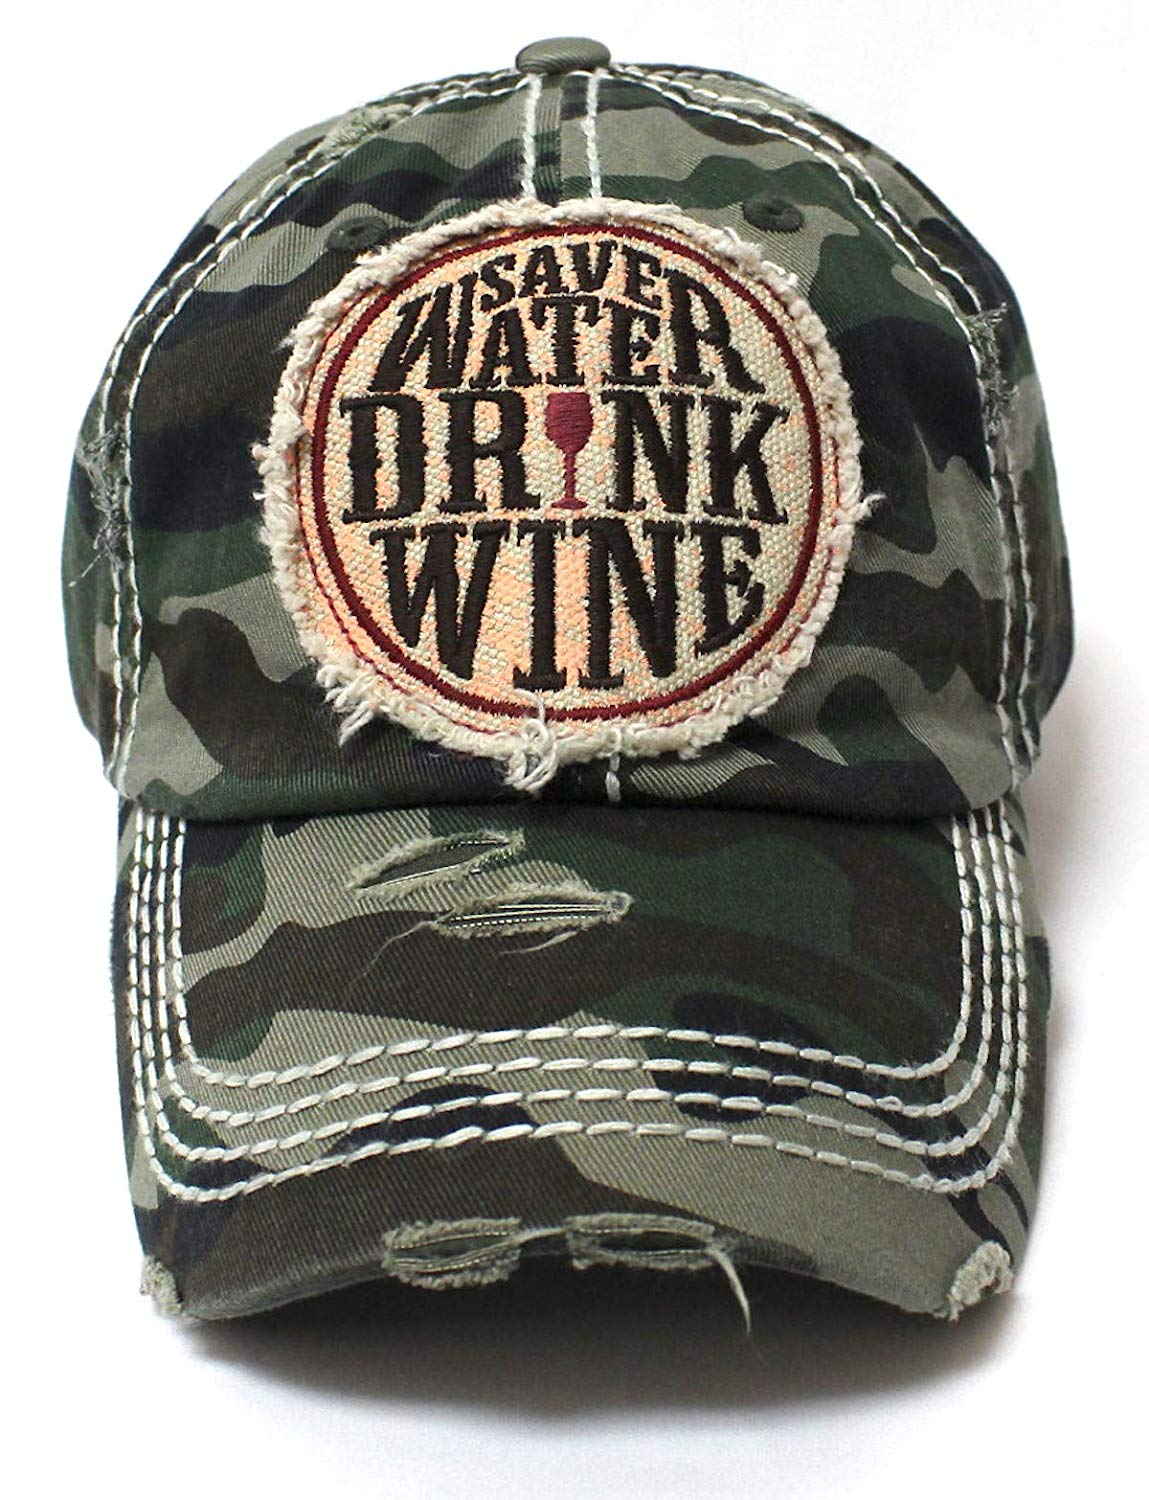 CAPS 'N VINTAGE Women's Patch Embroidery Baseball Cap Save Water Drink Wine - Caps 'N Vintage